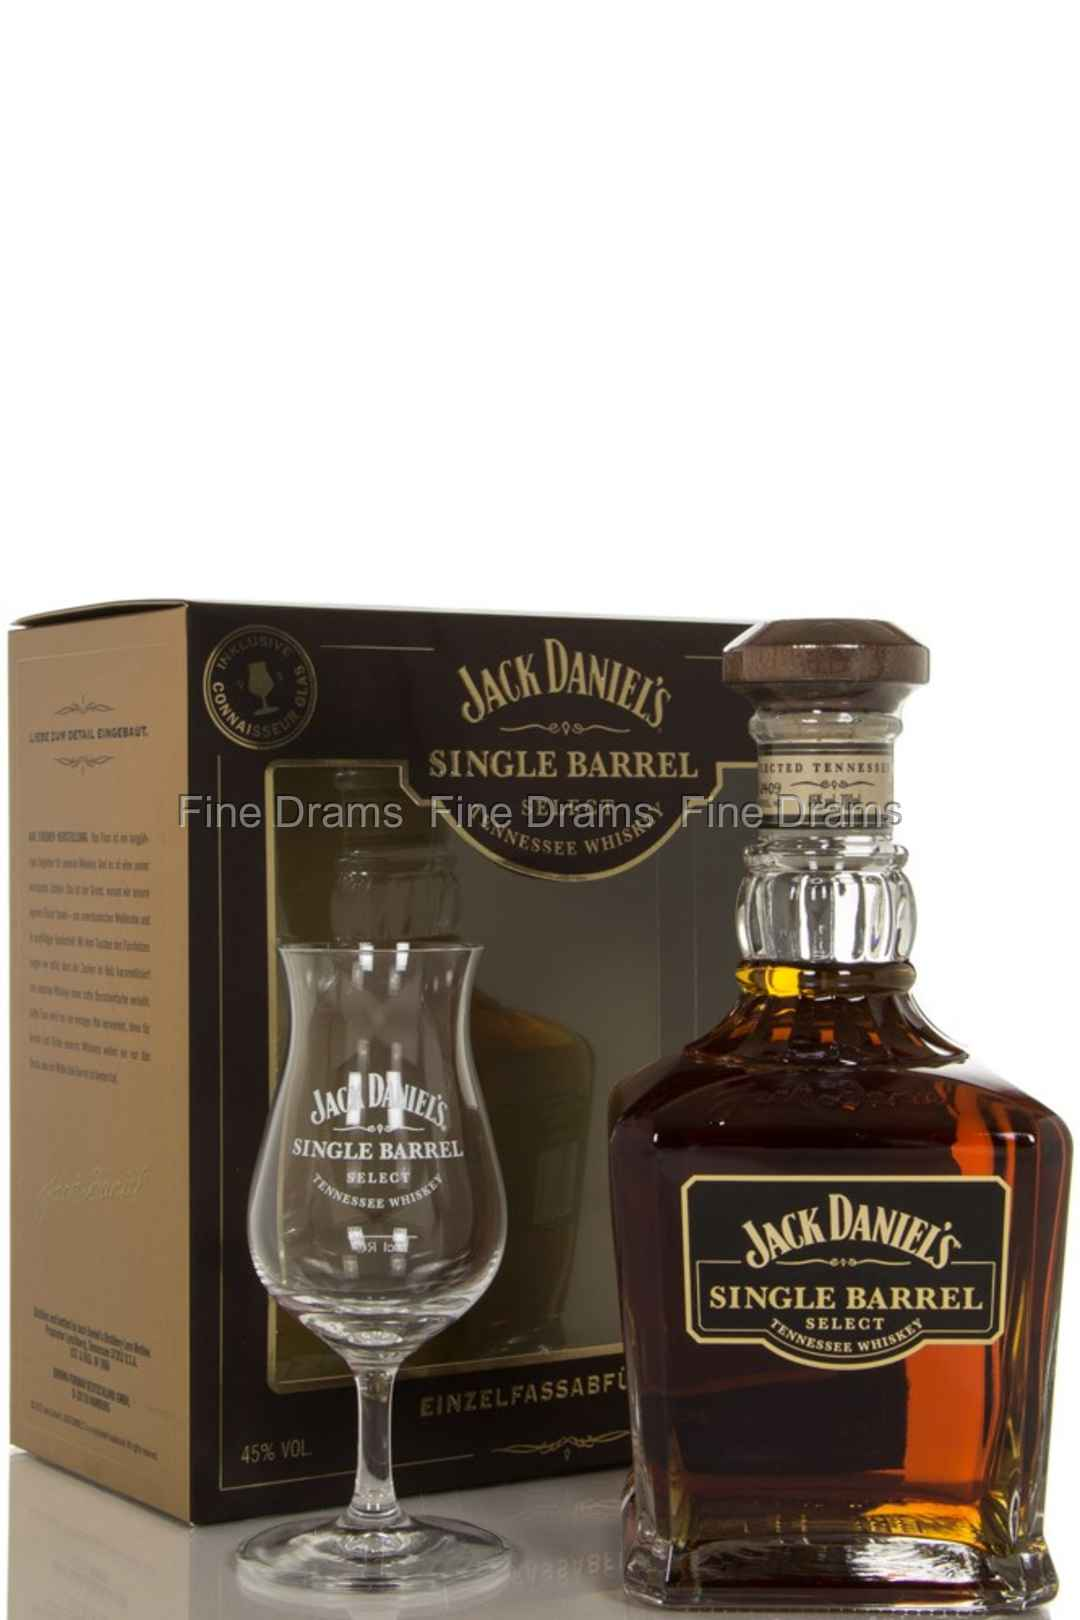 Jack Daniel's Single Barrel Gift Pack - 1 Glass